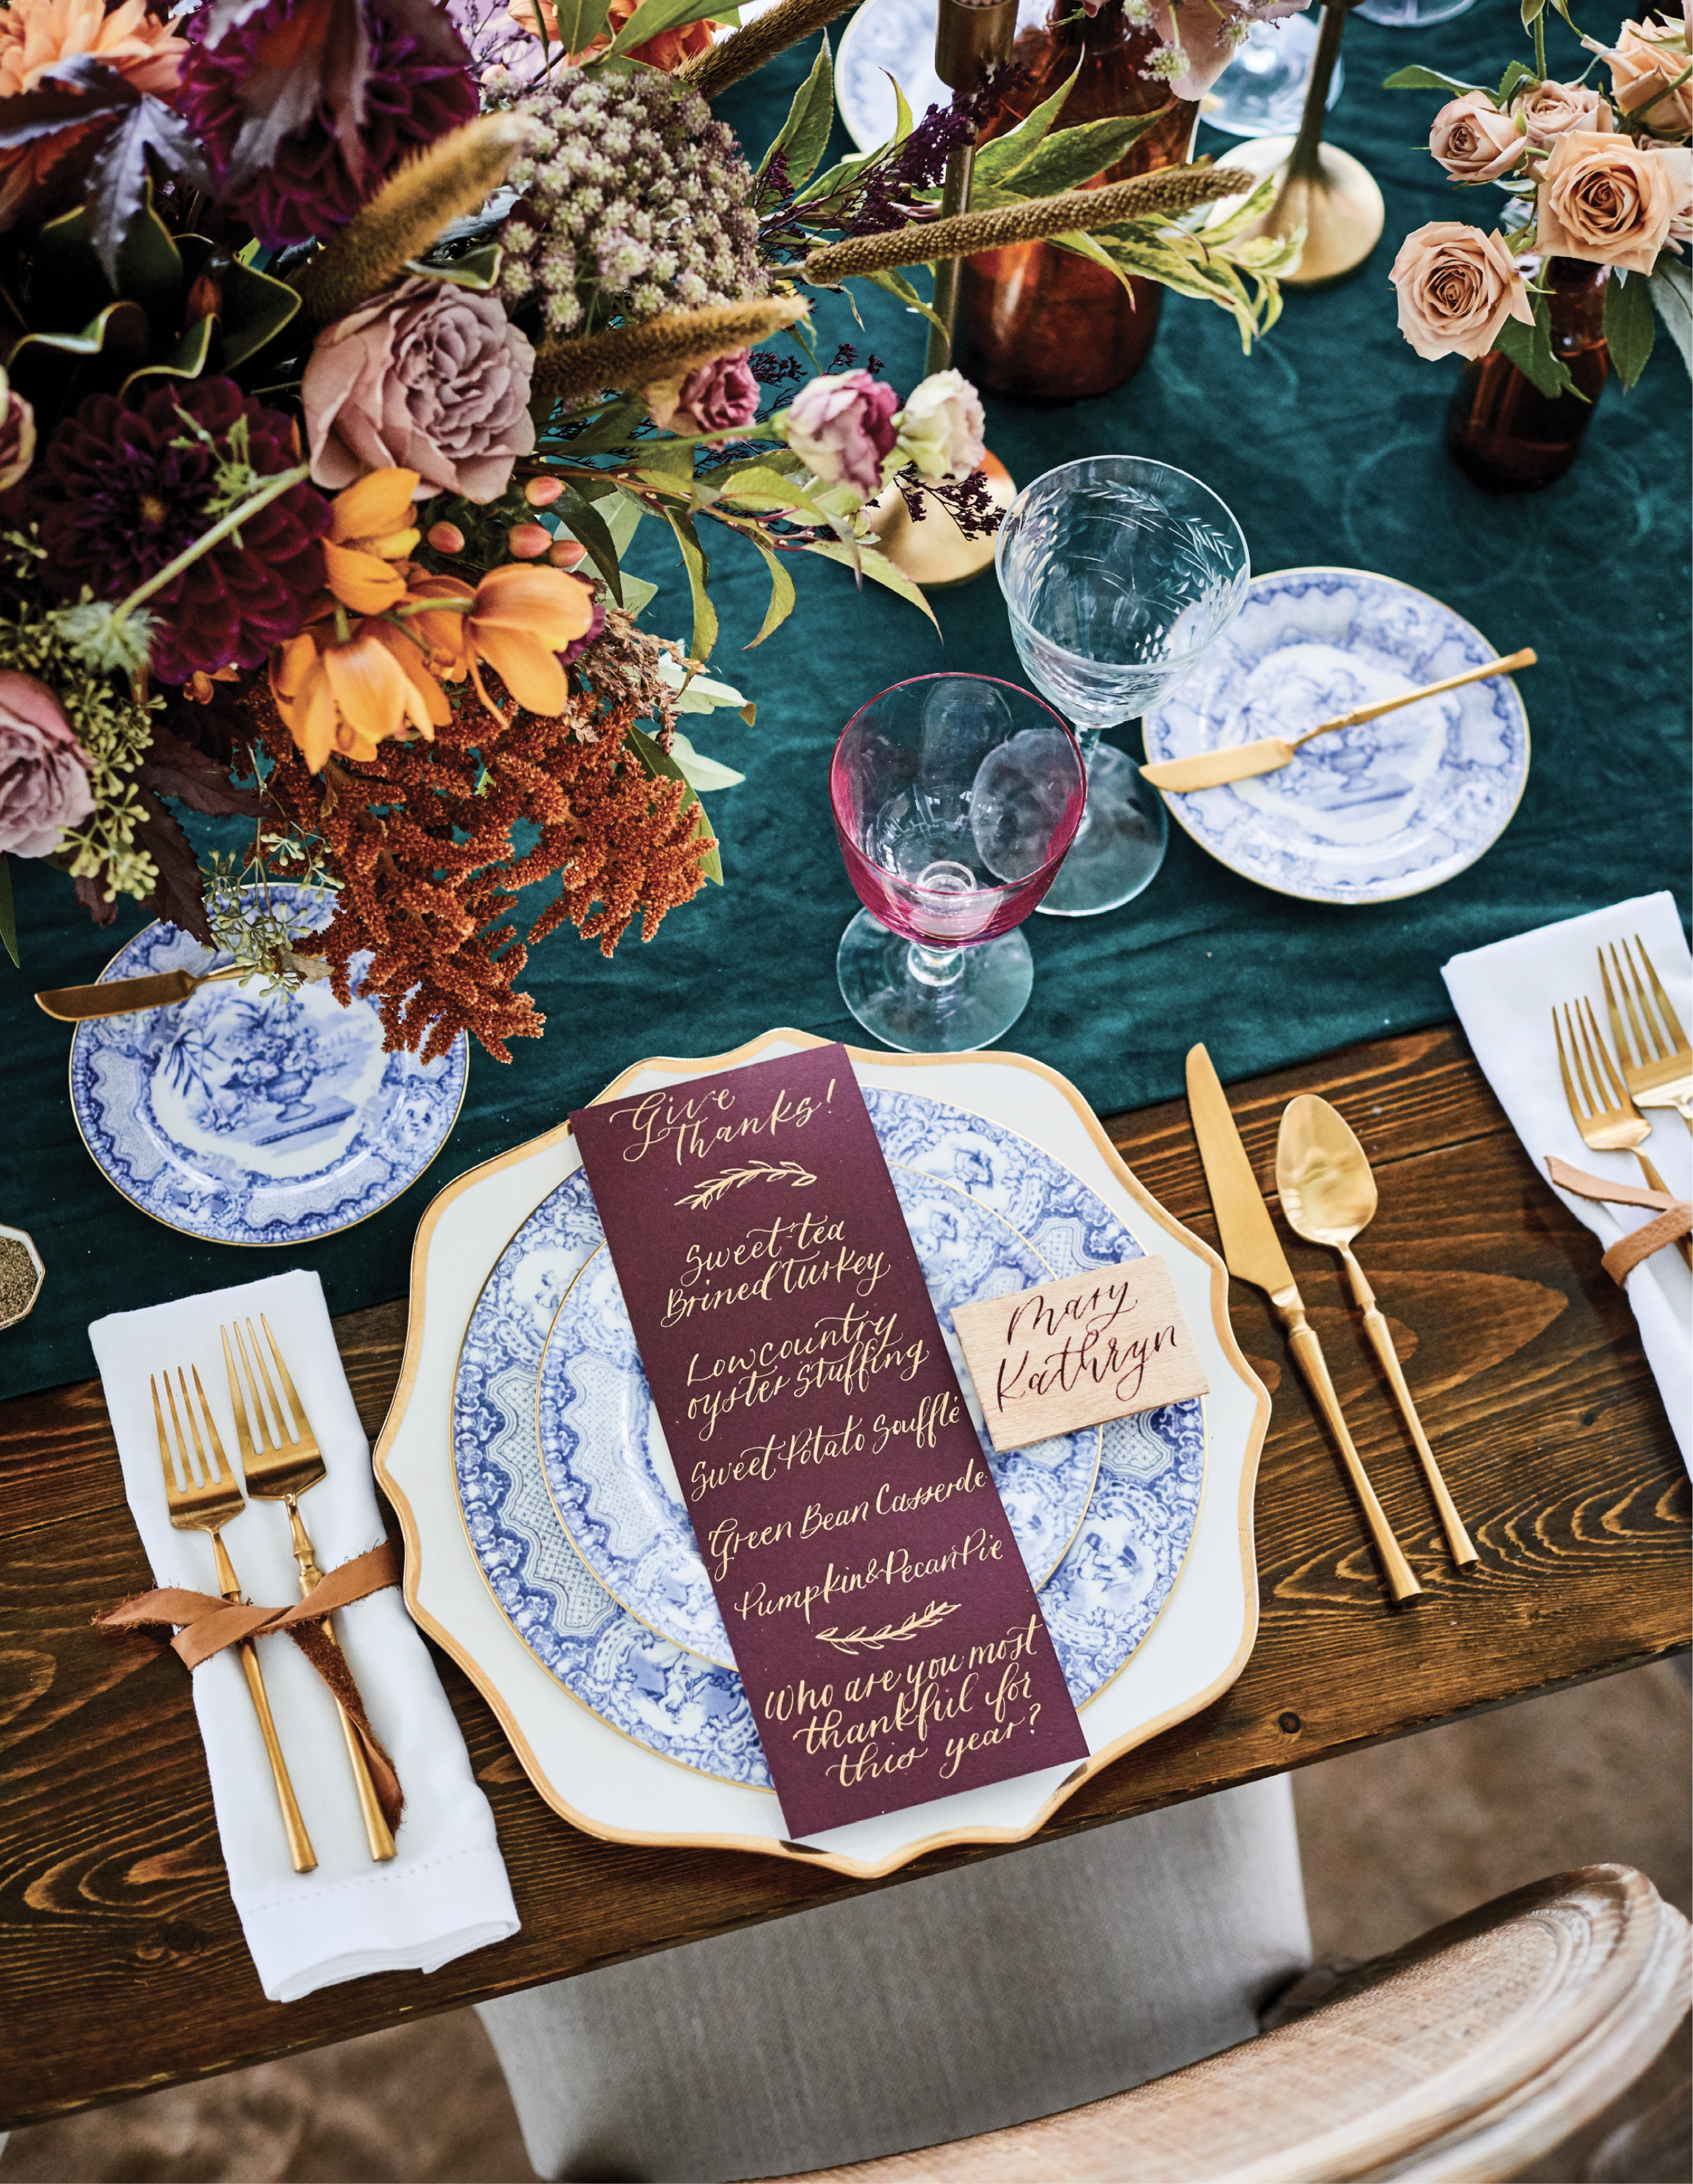 For her tablescapes, Lisa loves to mix it up, combining classic and modern, fancy and casual, such as antique china on a trendy gold-rim charger.